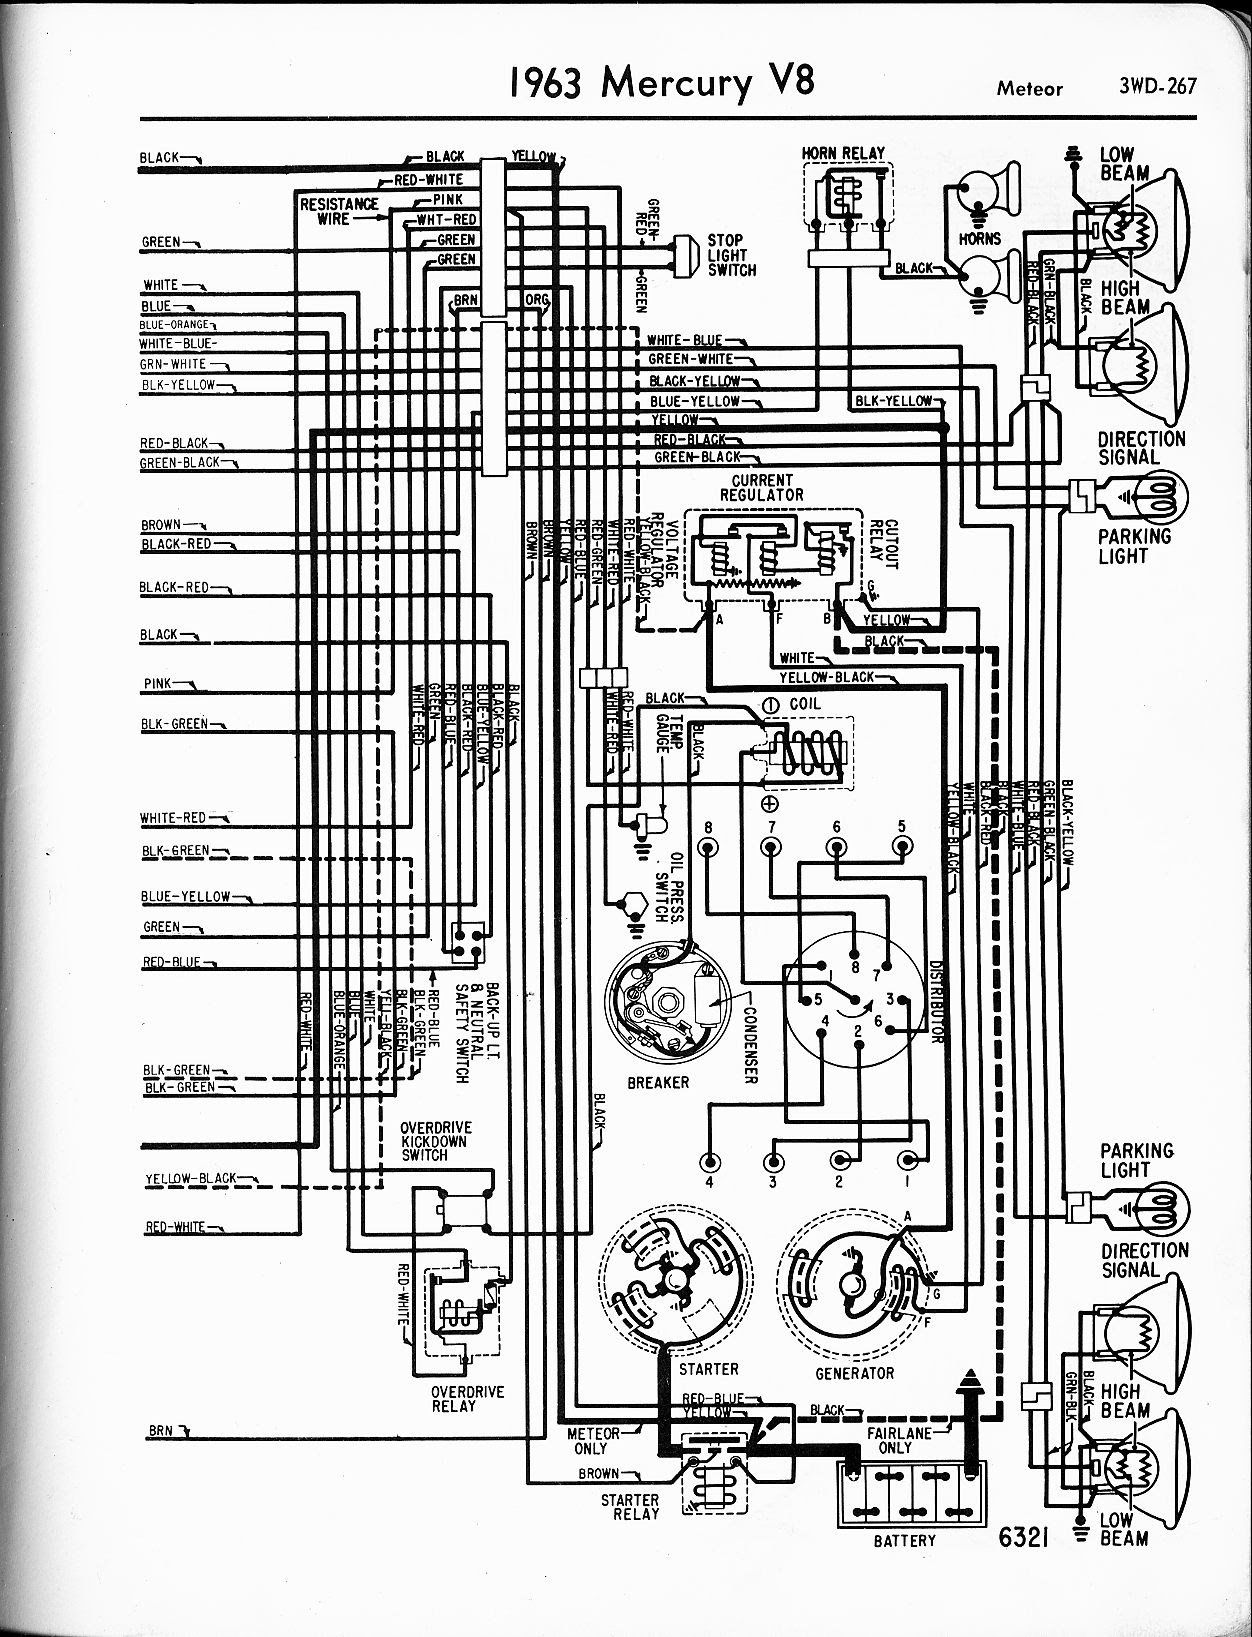 1962 Chevy Nova Wiring Schematic -Gmc Wiring Harness | Begeboy Wiring  Diagram SourceBegeboy Wiring Diagram Source